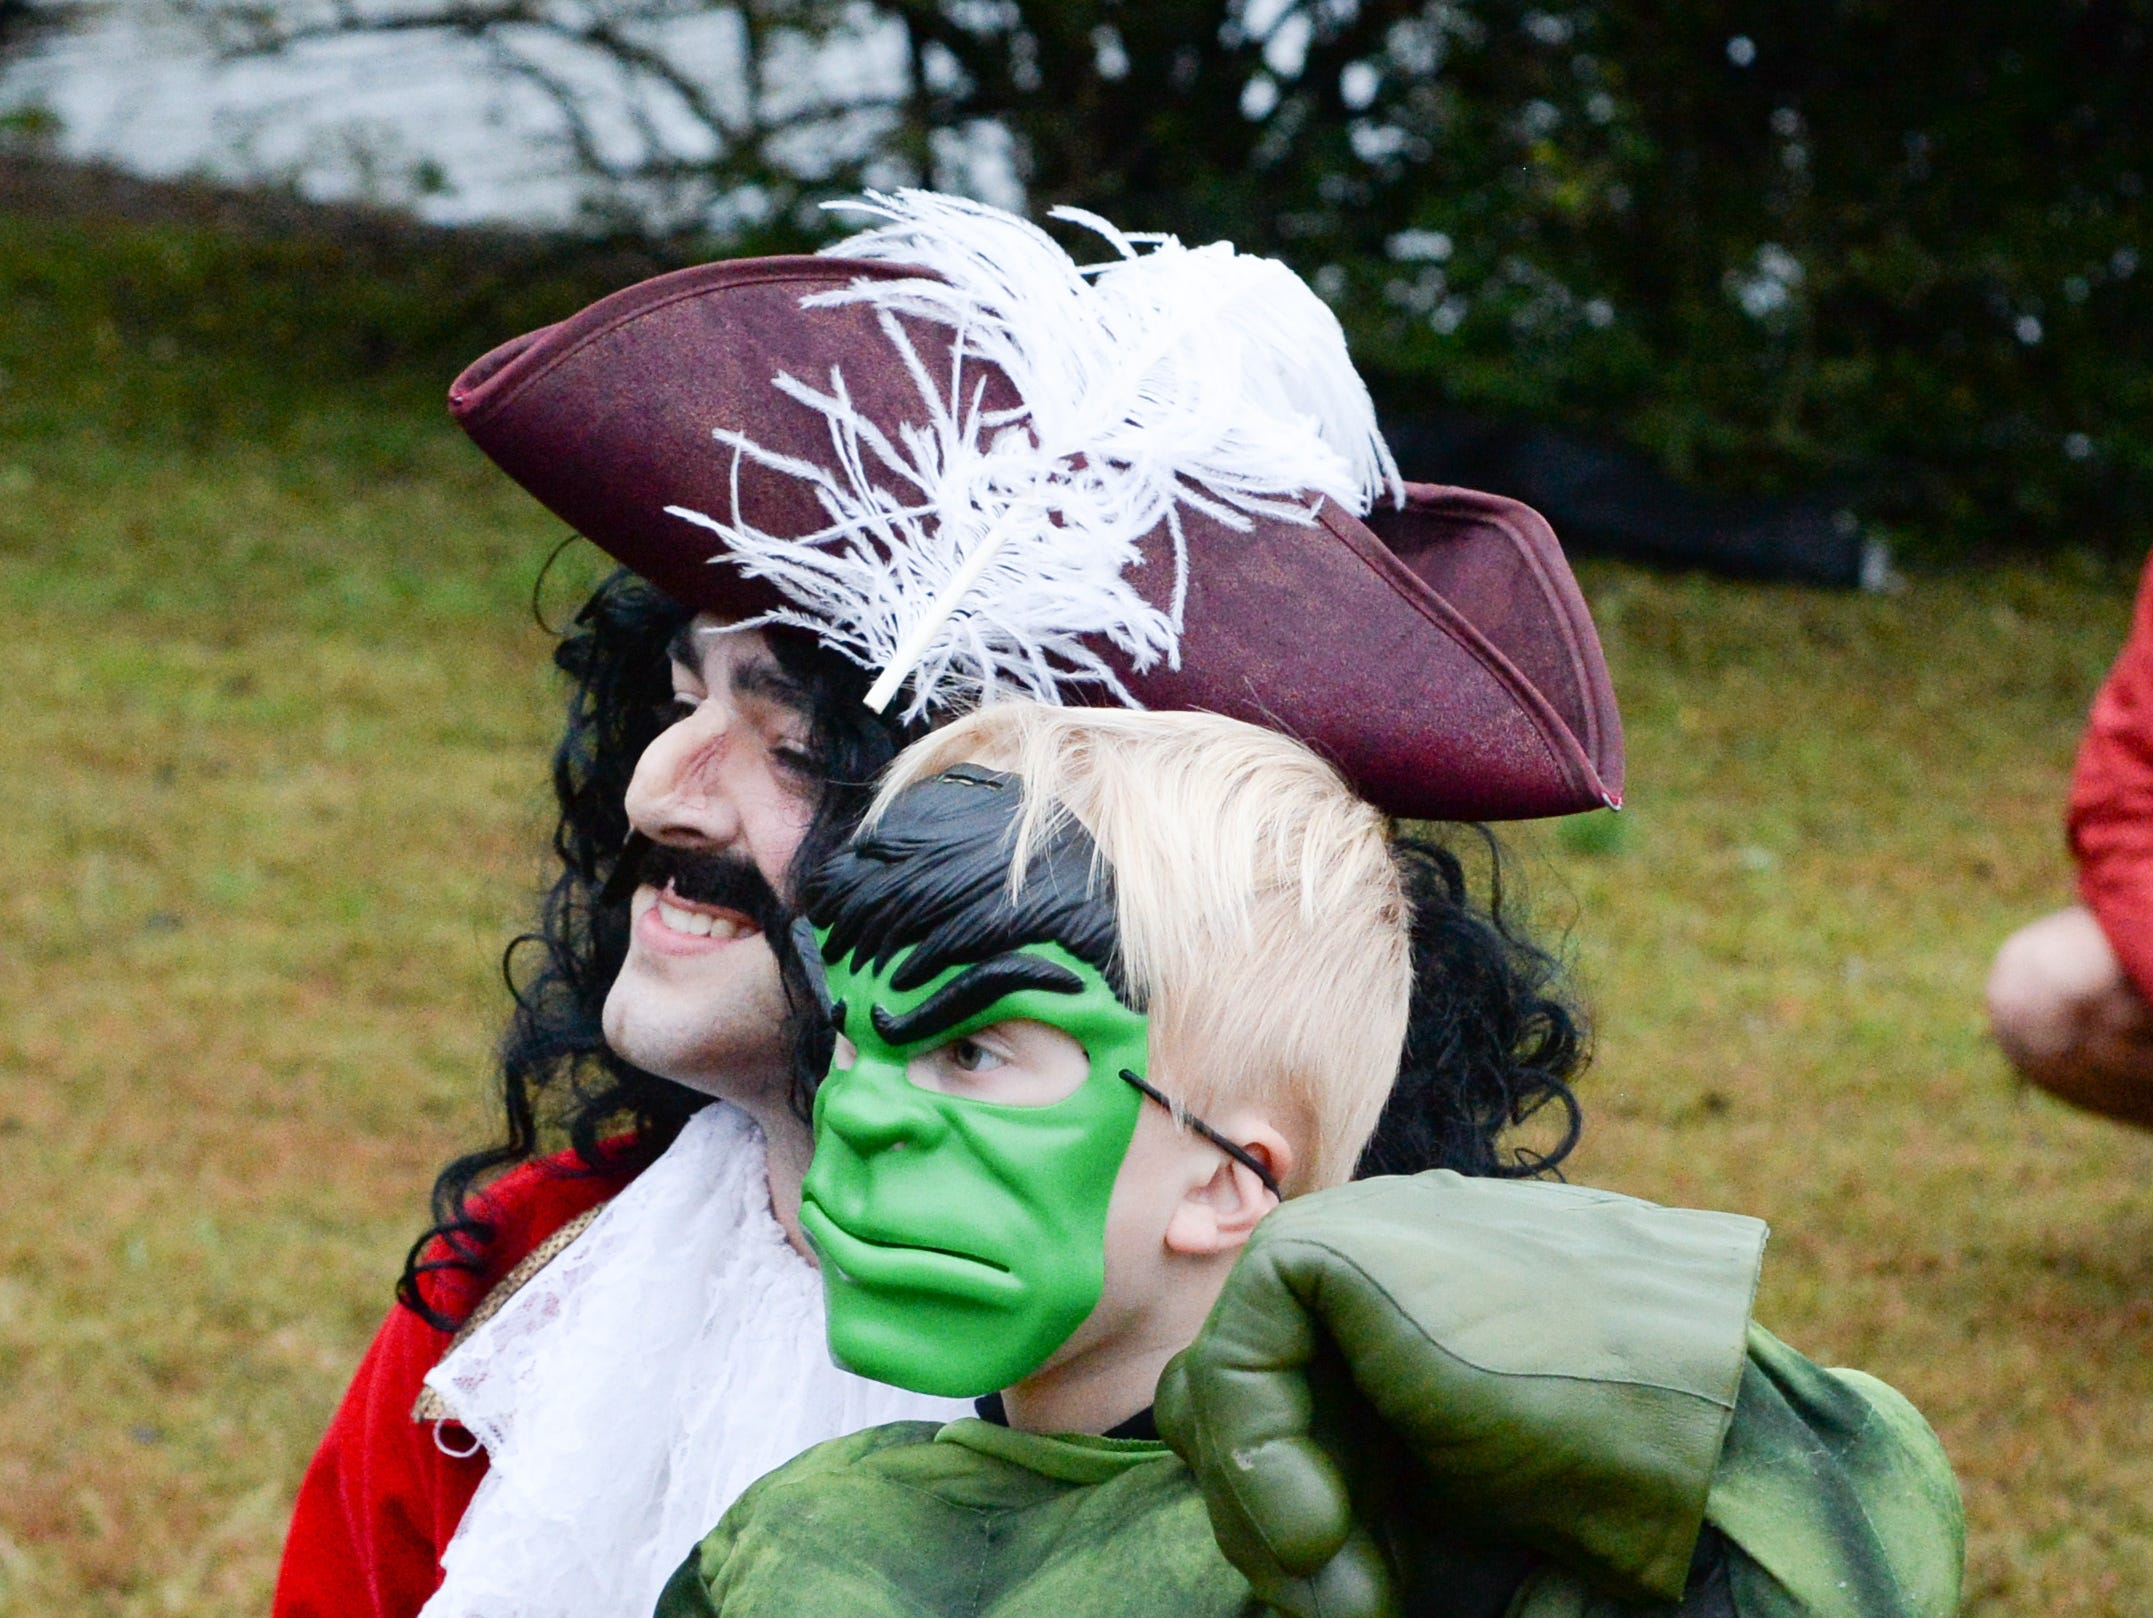 Owen Tisdale (right) interacts with characters during the Castle of Villains trick or treating event at Historic Rock Castle in Hendersonville on Friday, Oct. 26.